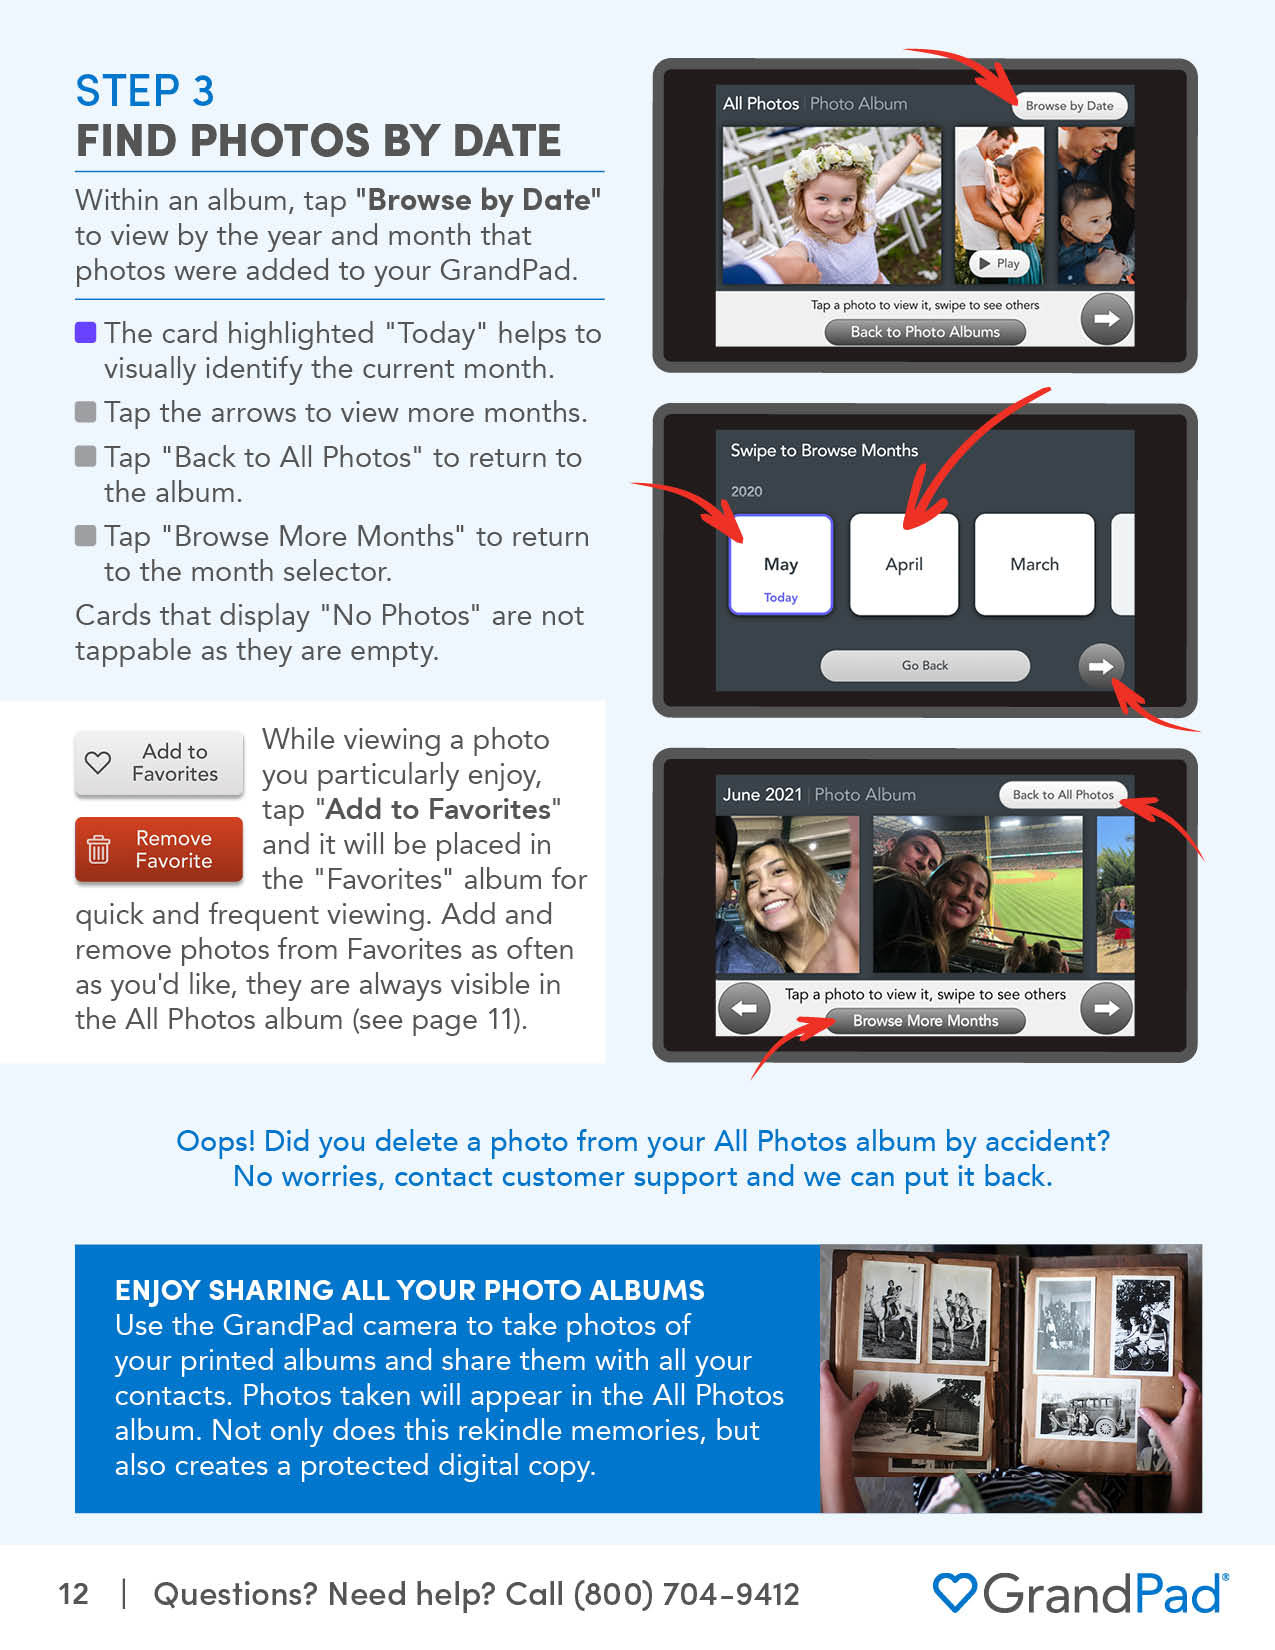 Instruction on browsing photos by date